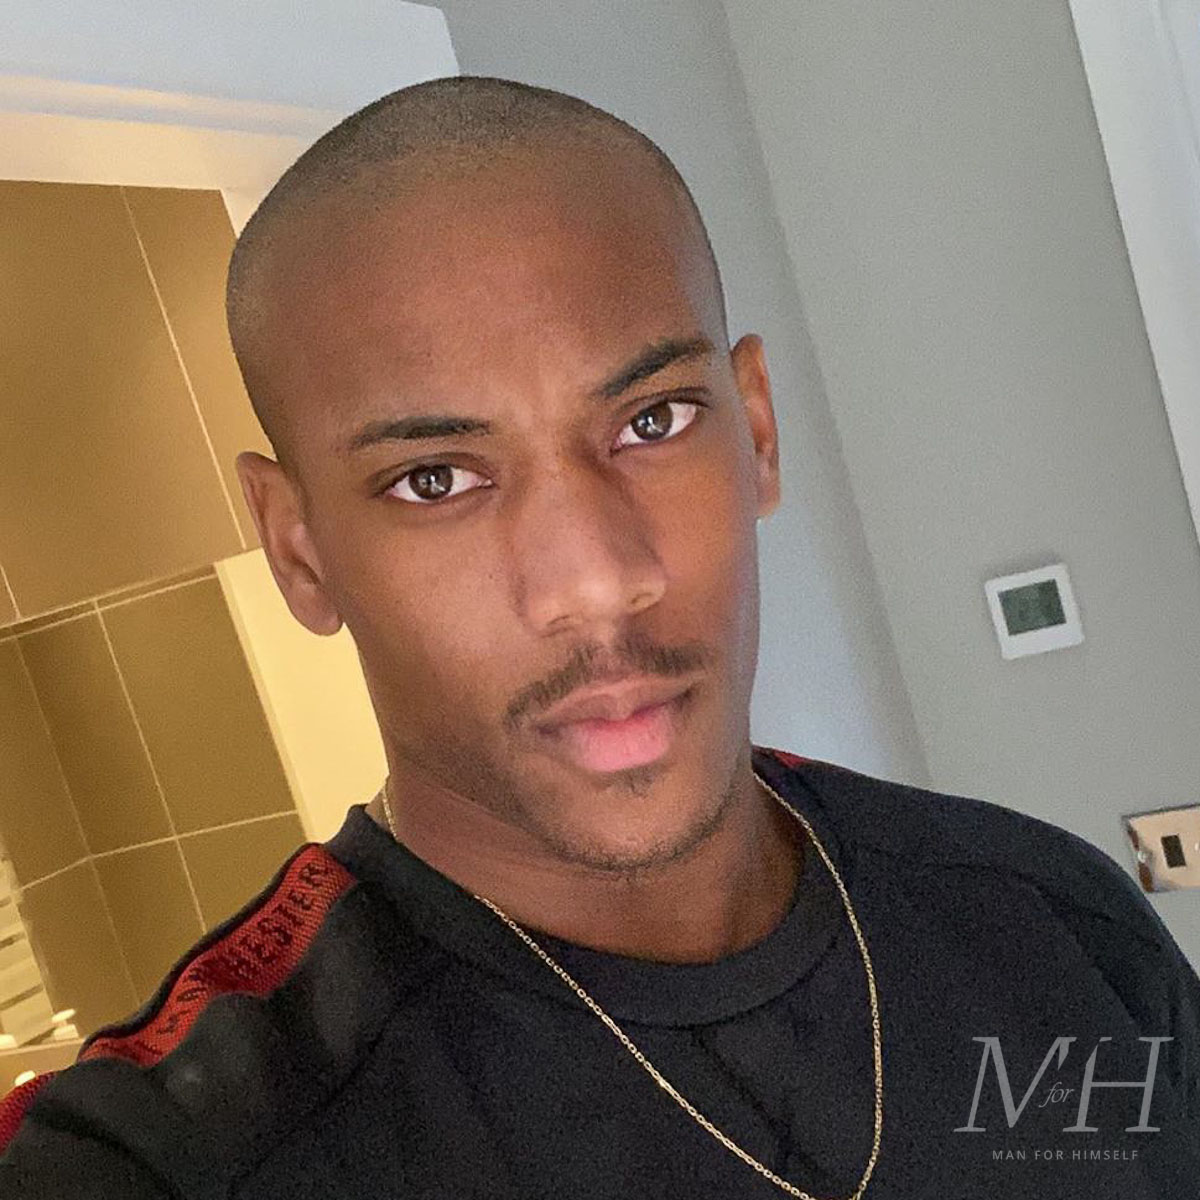 anthony-martial-footballer-hair-shaved-head-lockdown-man-for-himself-1